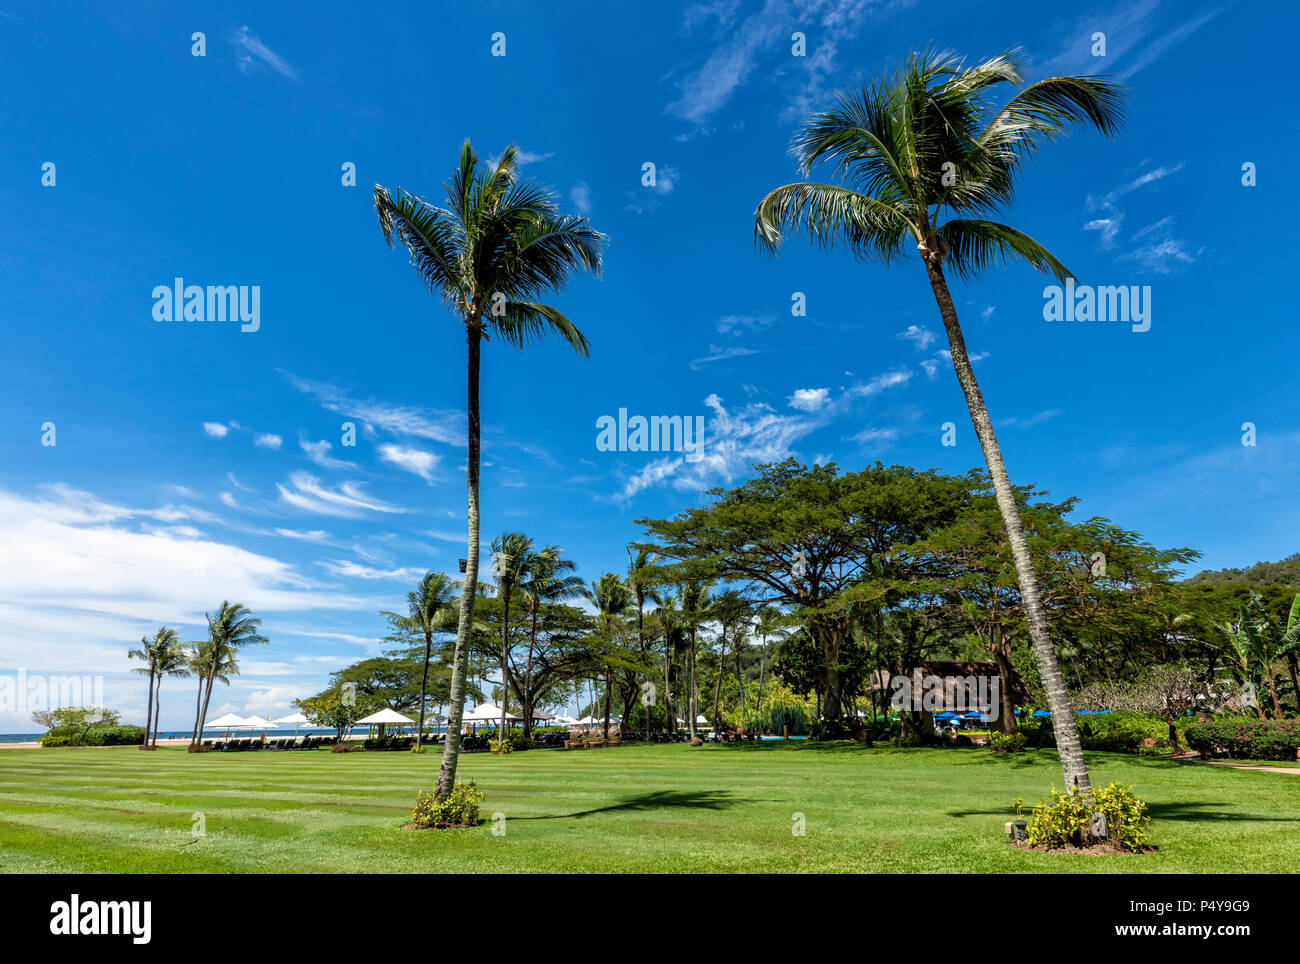 Palm trees against a blue sky in Kota Kinabalu on Borneo, Malaysia - Stock Image